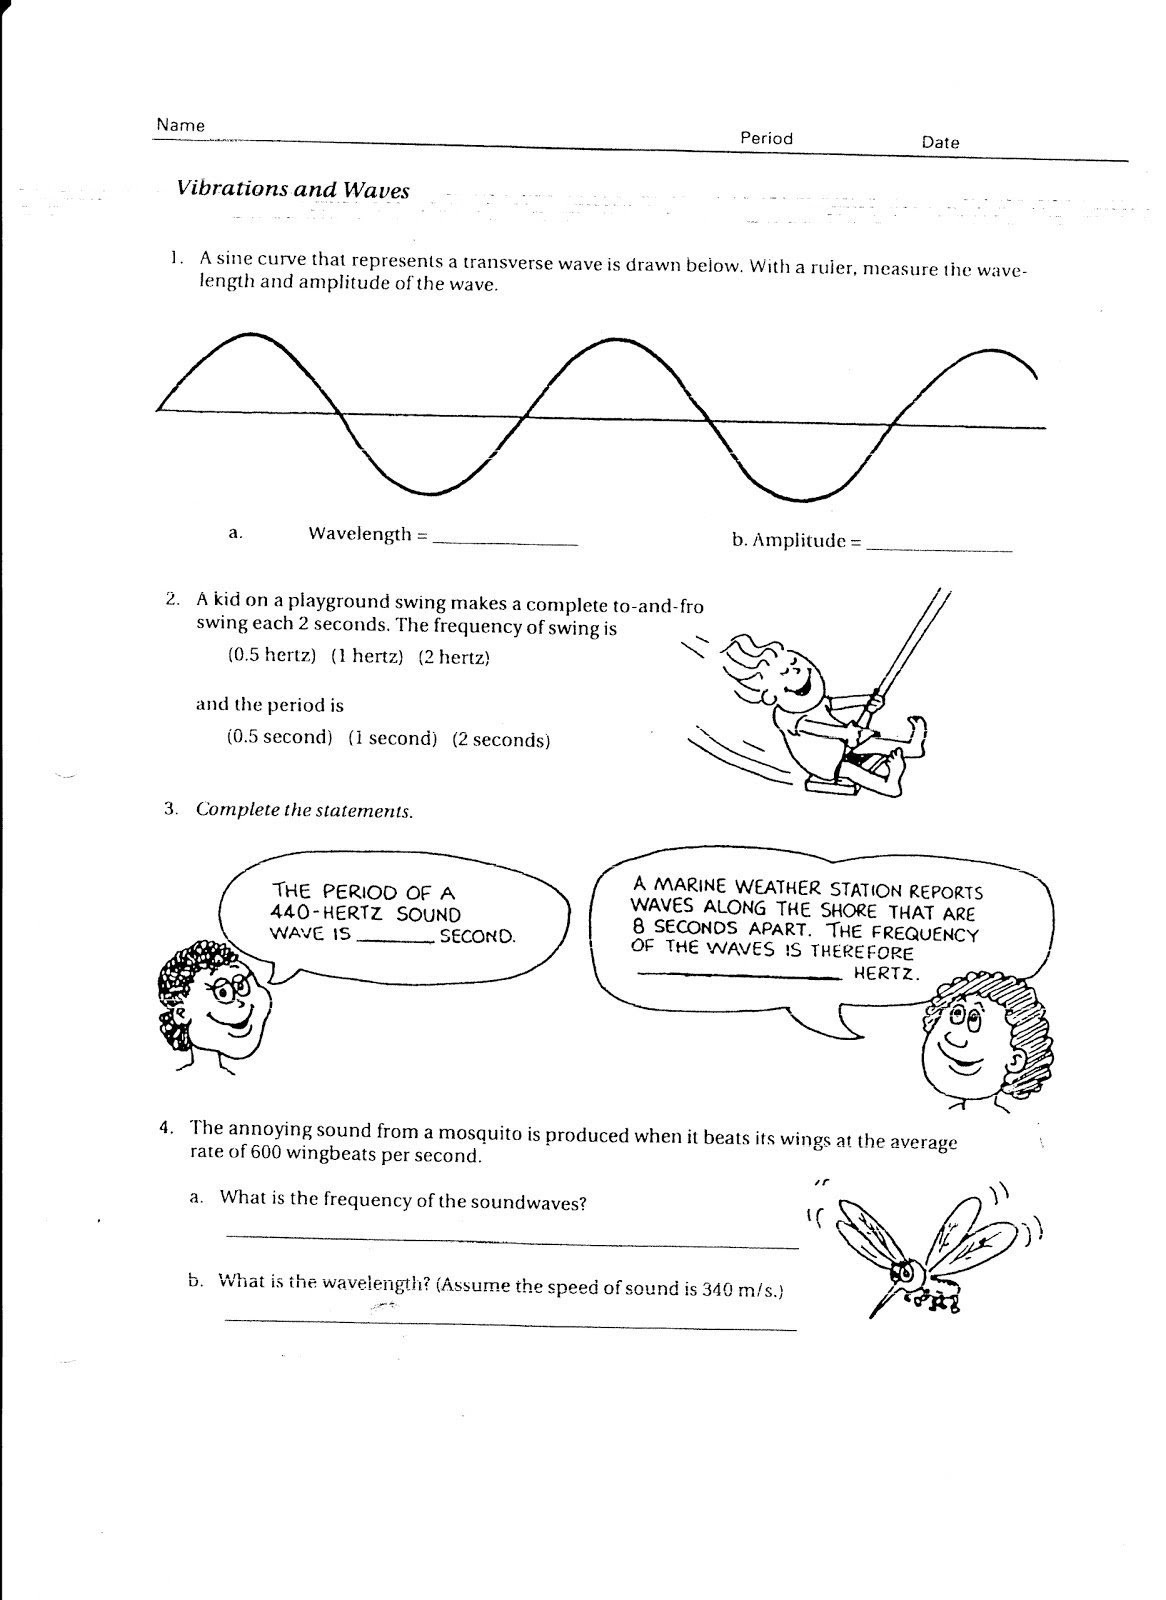 Waves Worksheet 1 Answers Waves sound and Light Answer Key Philips Blue Icicle Lights